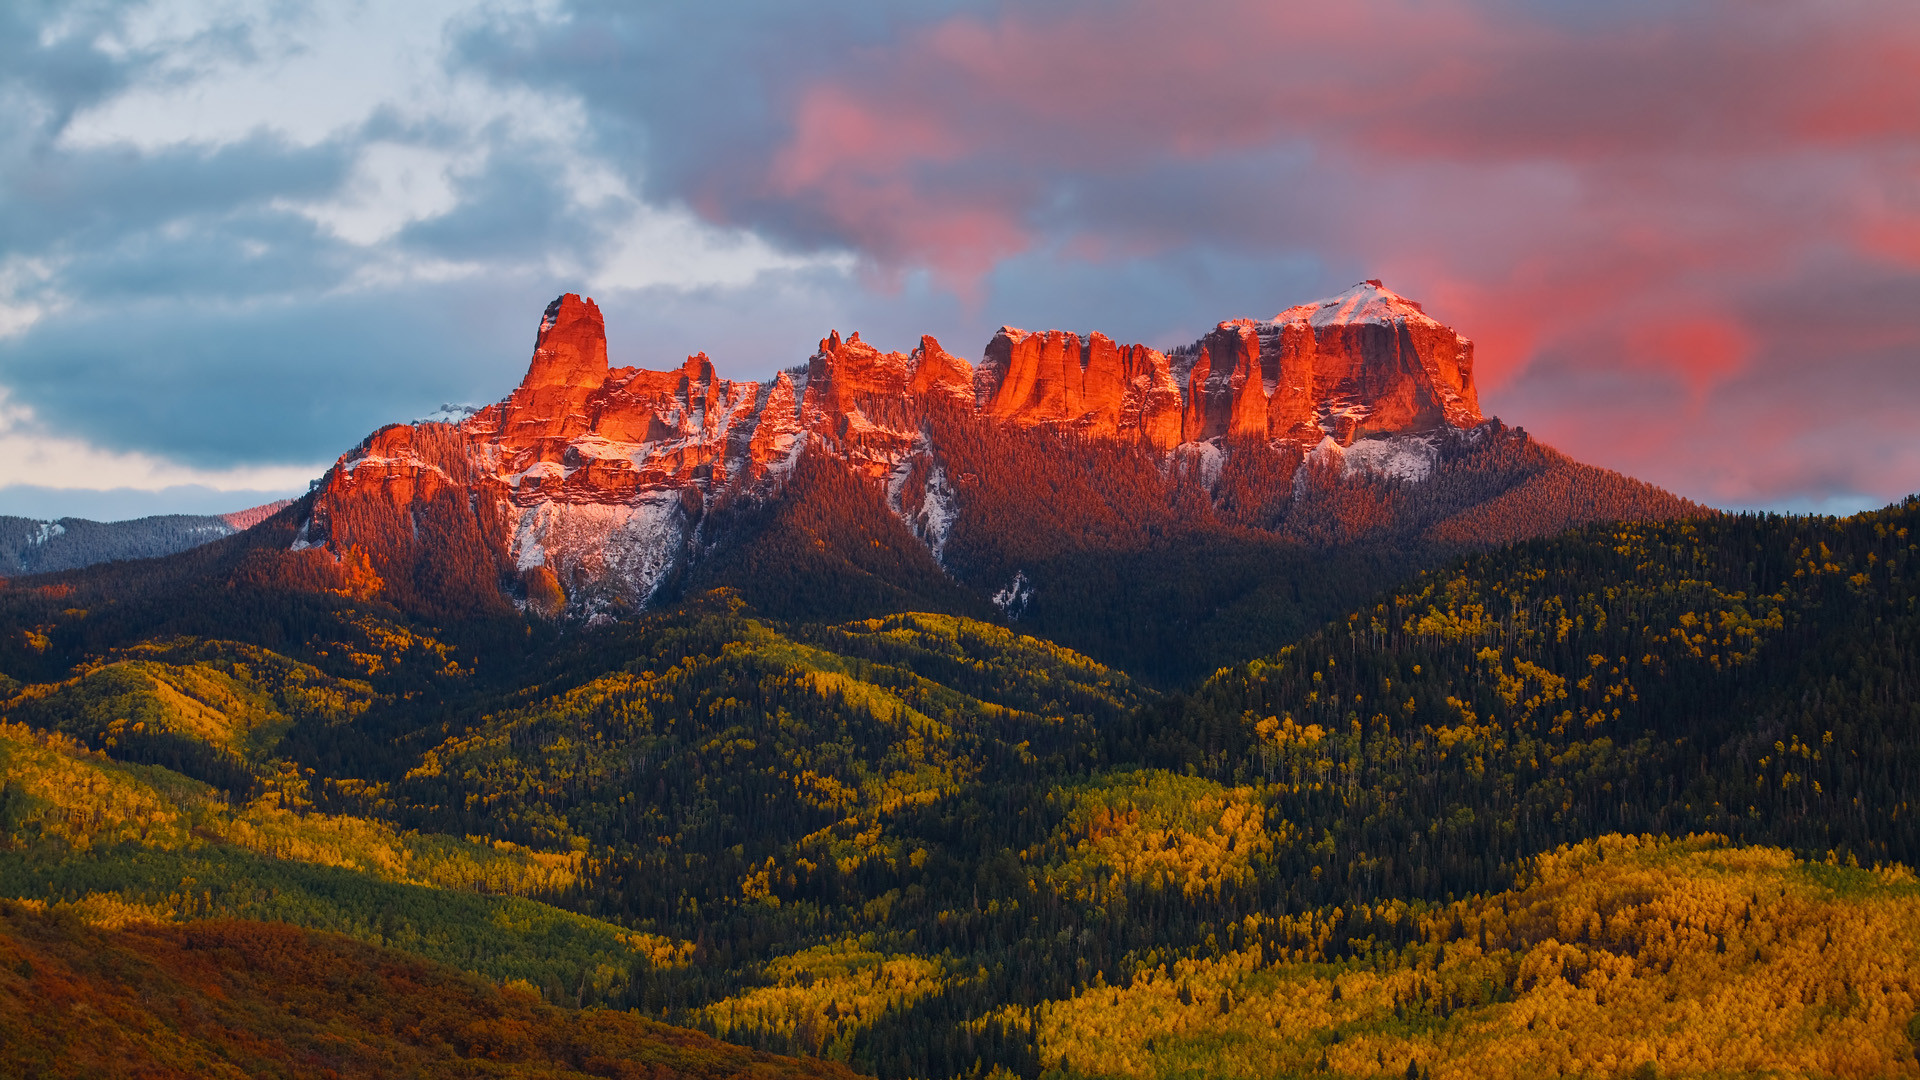 the most awesome display of color Ive seen The alpenglow on the 1920x1080